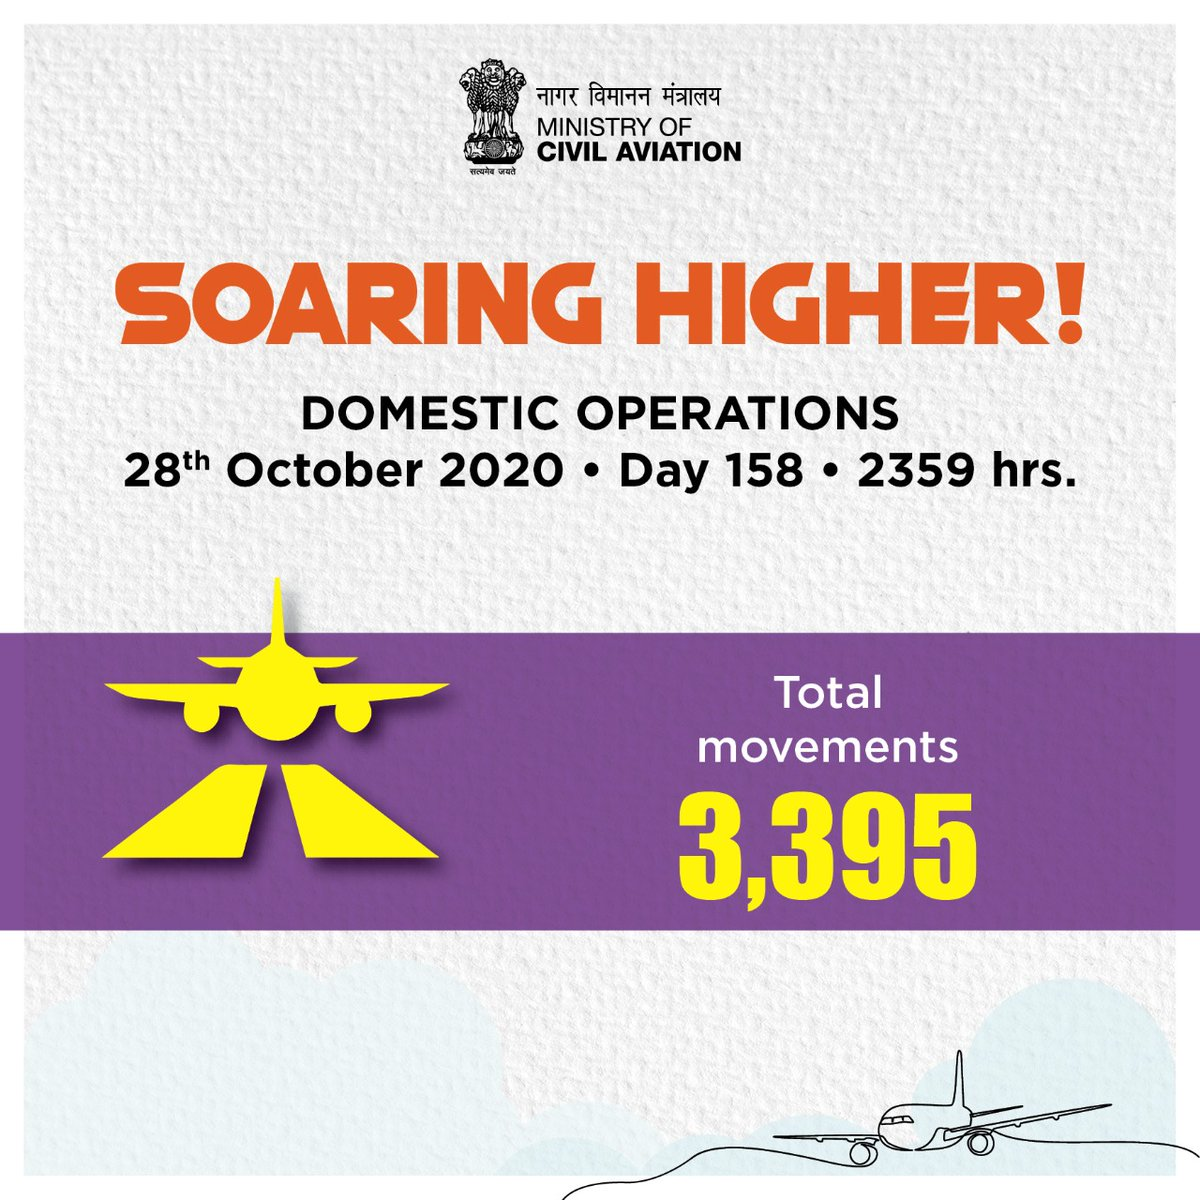 India soaring higher!  A total of 3395 flight movements took place across the country on 28th October. Aviation operations continue to soar! #SabUdenSabJuden #IndiaFliesHigh https://t.co/z6r779GNma